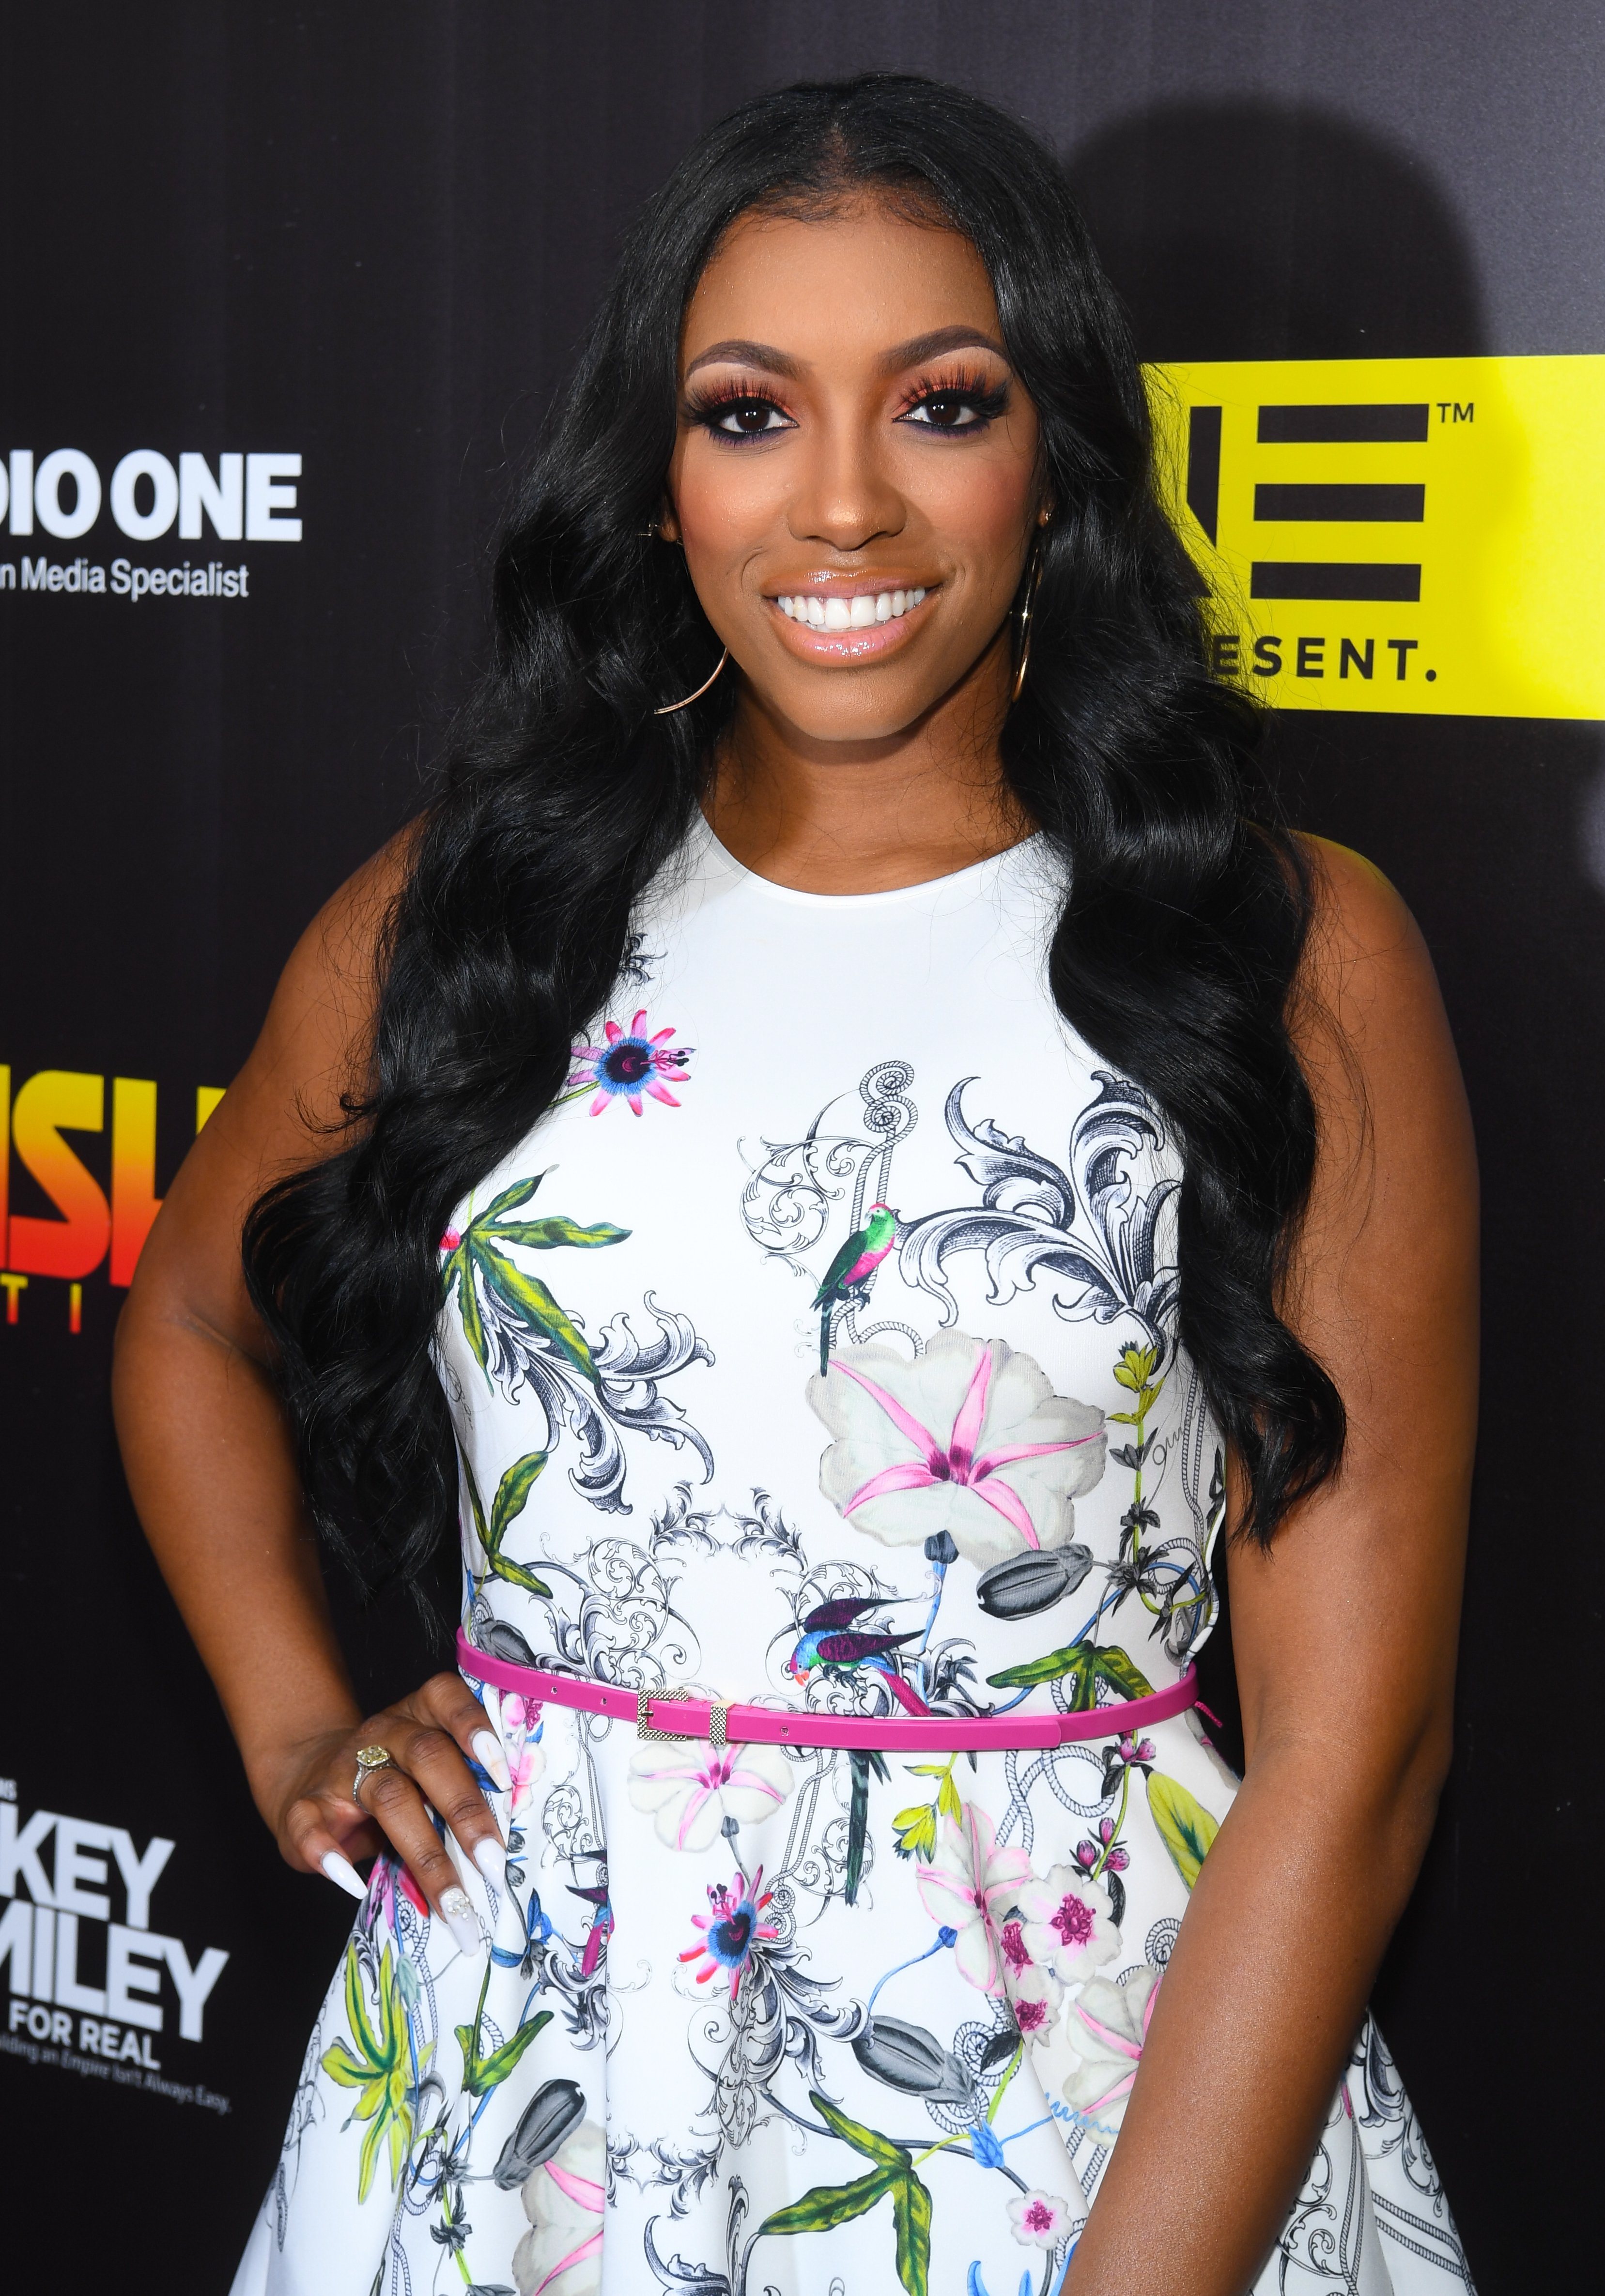 """Porsha Williams at the """"Rickey Smiley for Real"""" Season 4 Premiere in Atlanta, Georgia, 2017 